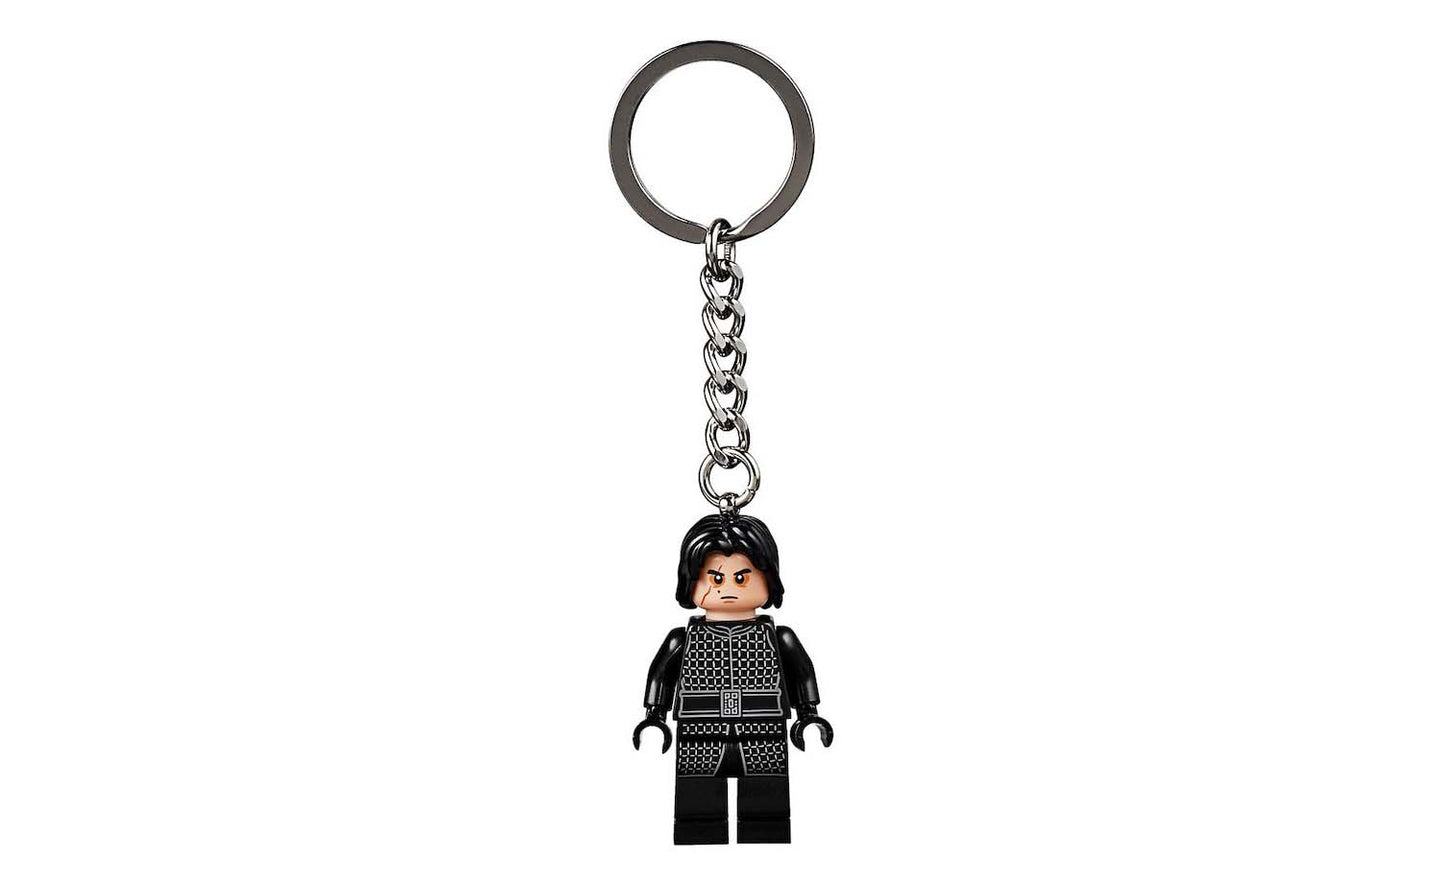 853949 | LEGO® Star Wars™ Kylo Ren Key Chain